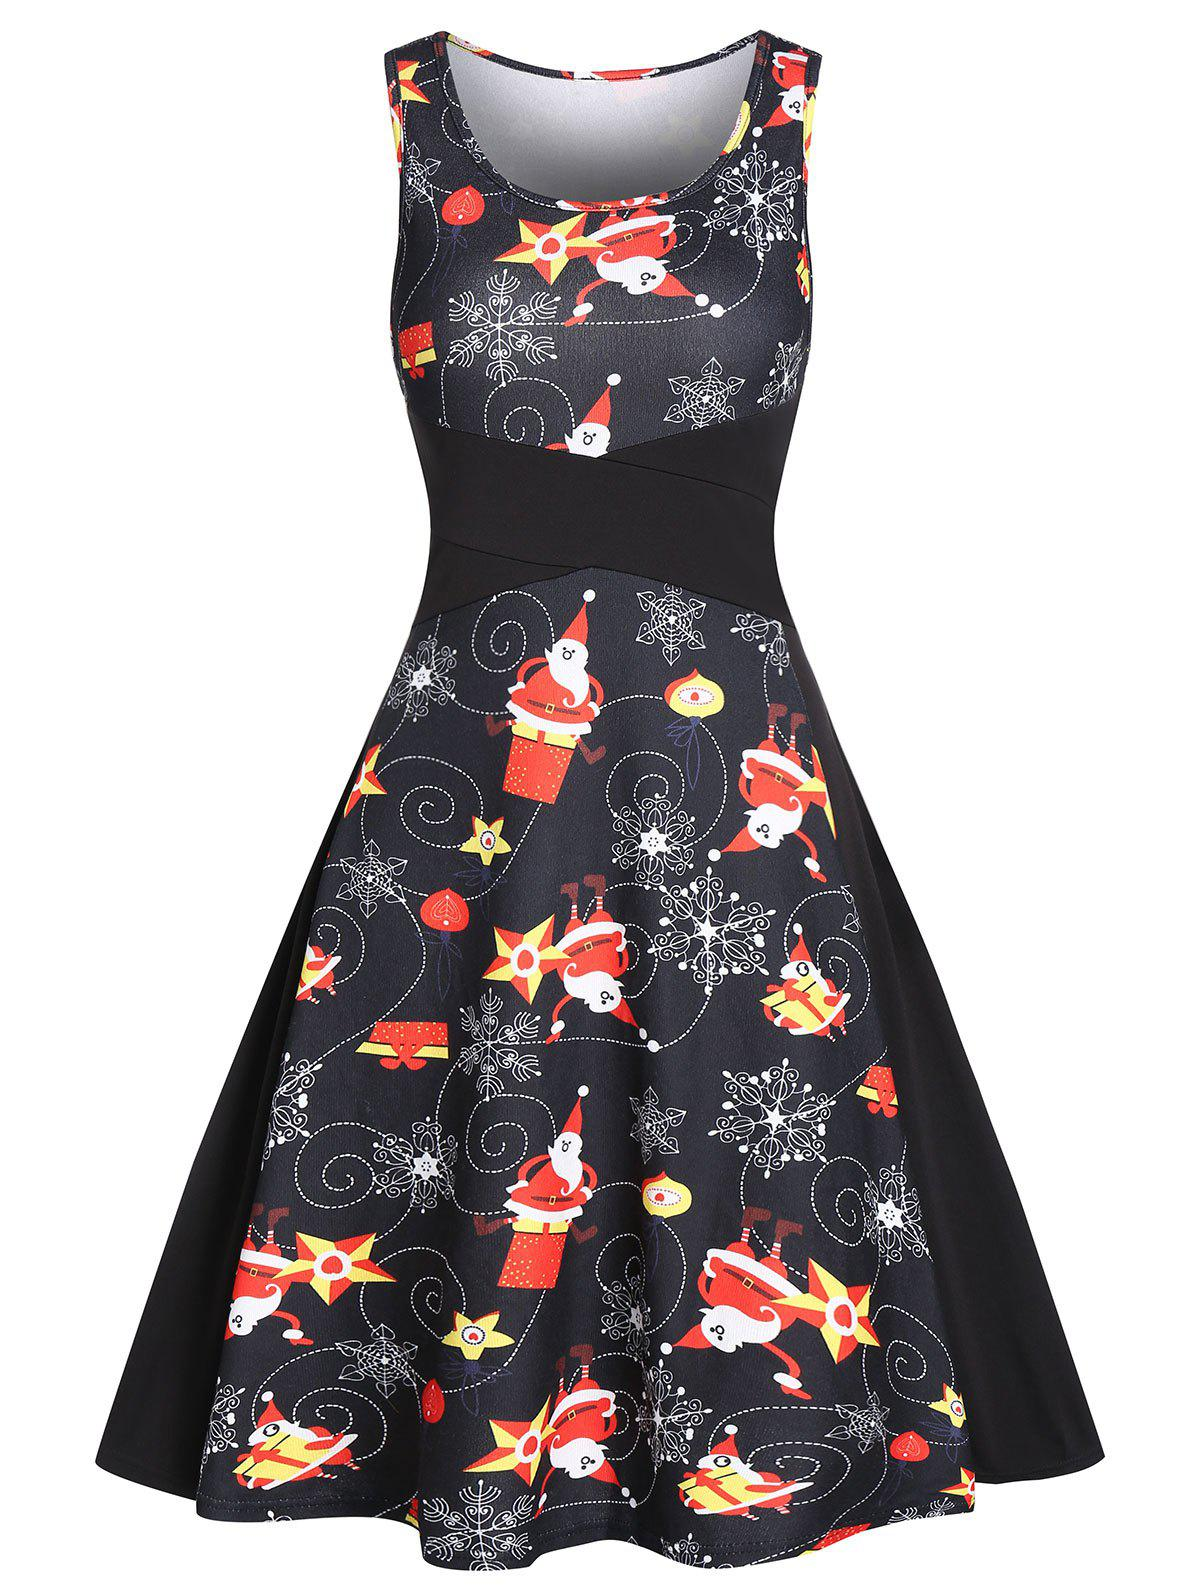 Buy Vintage Snowflake Santa Claus Print Christmas Dress